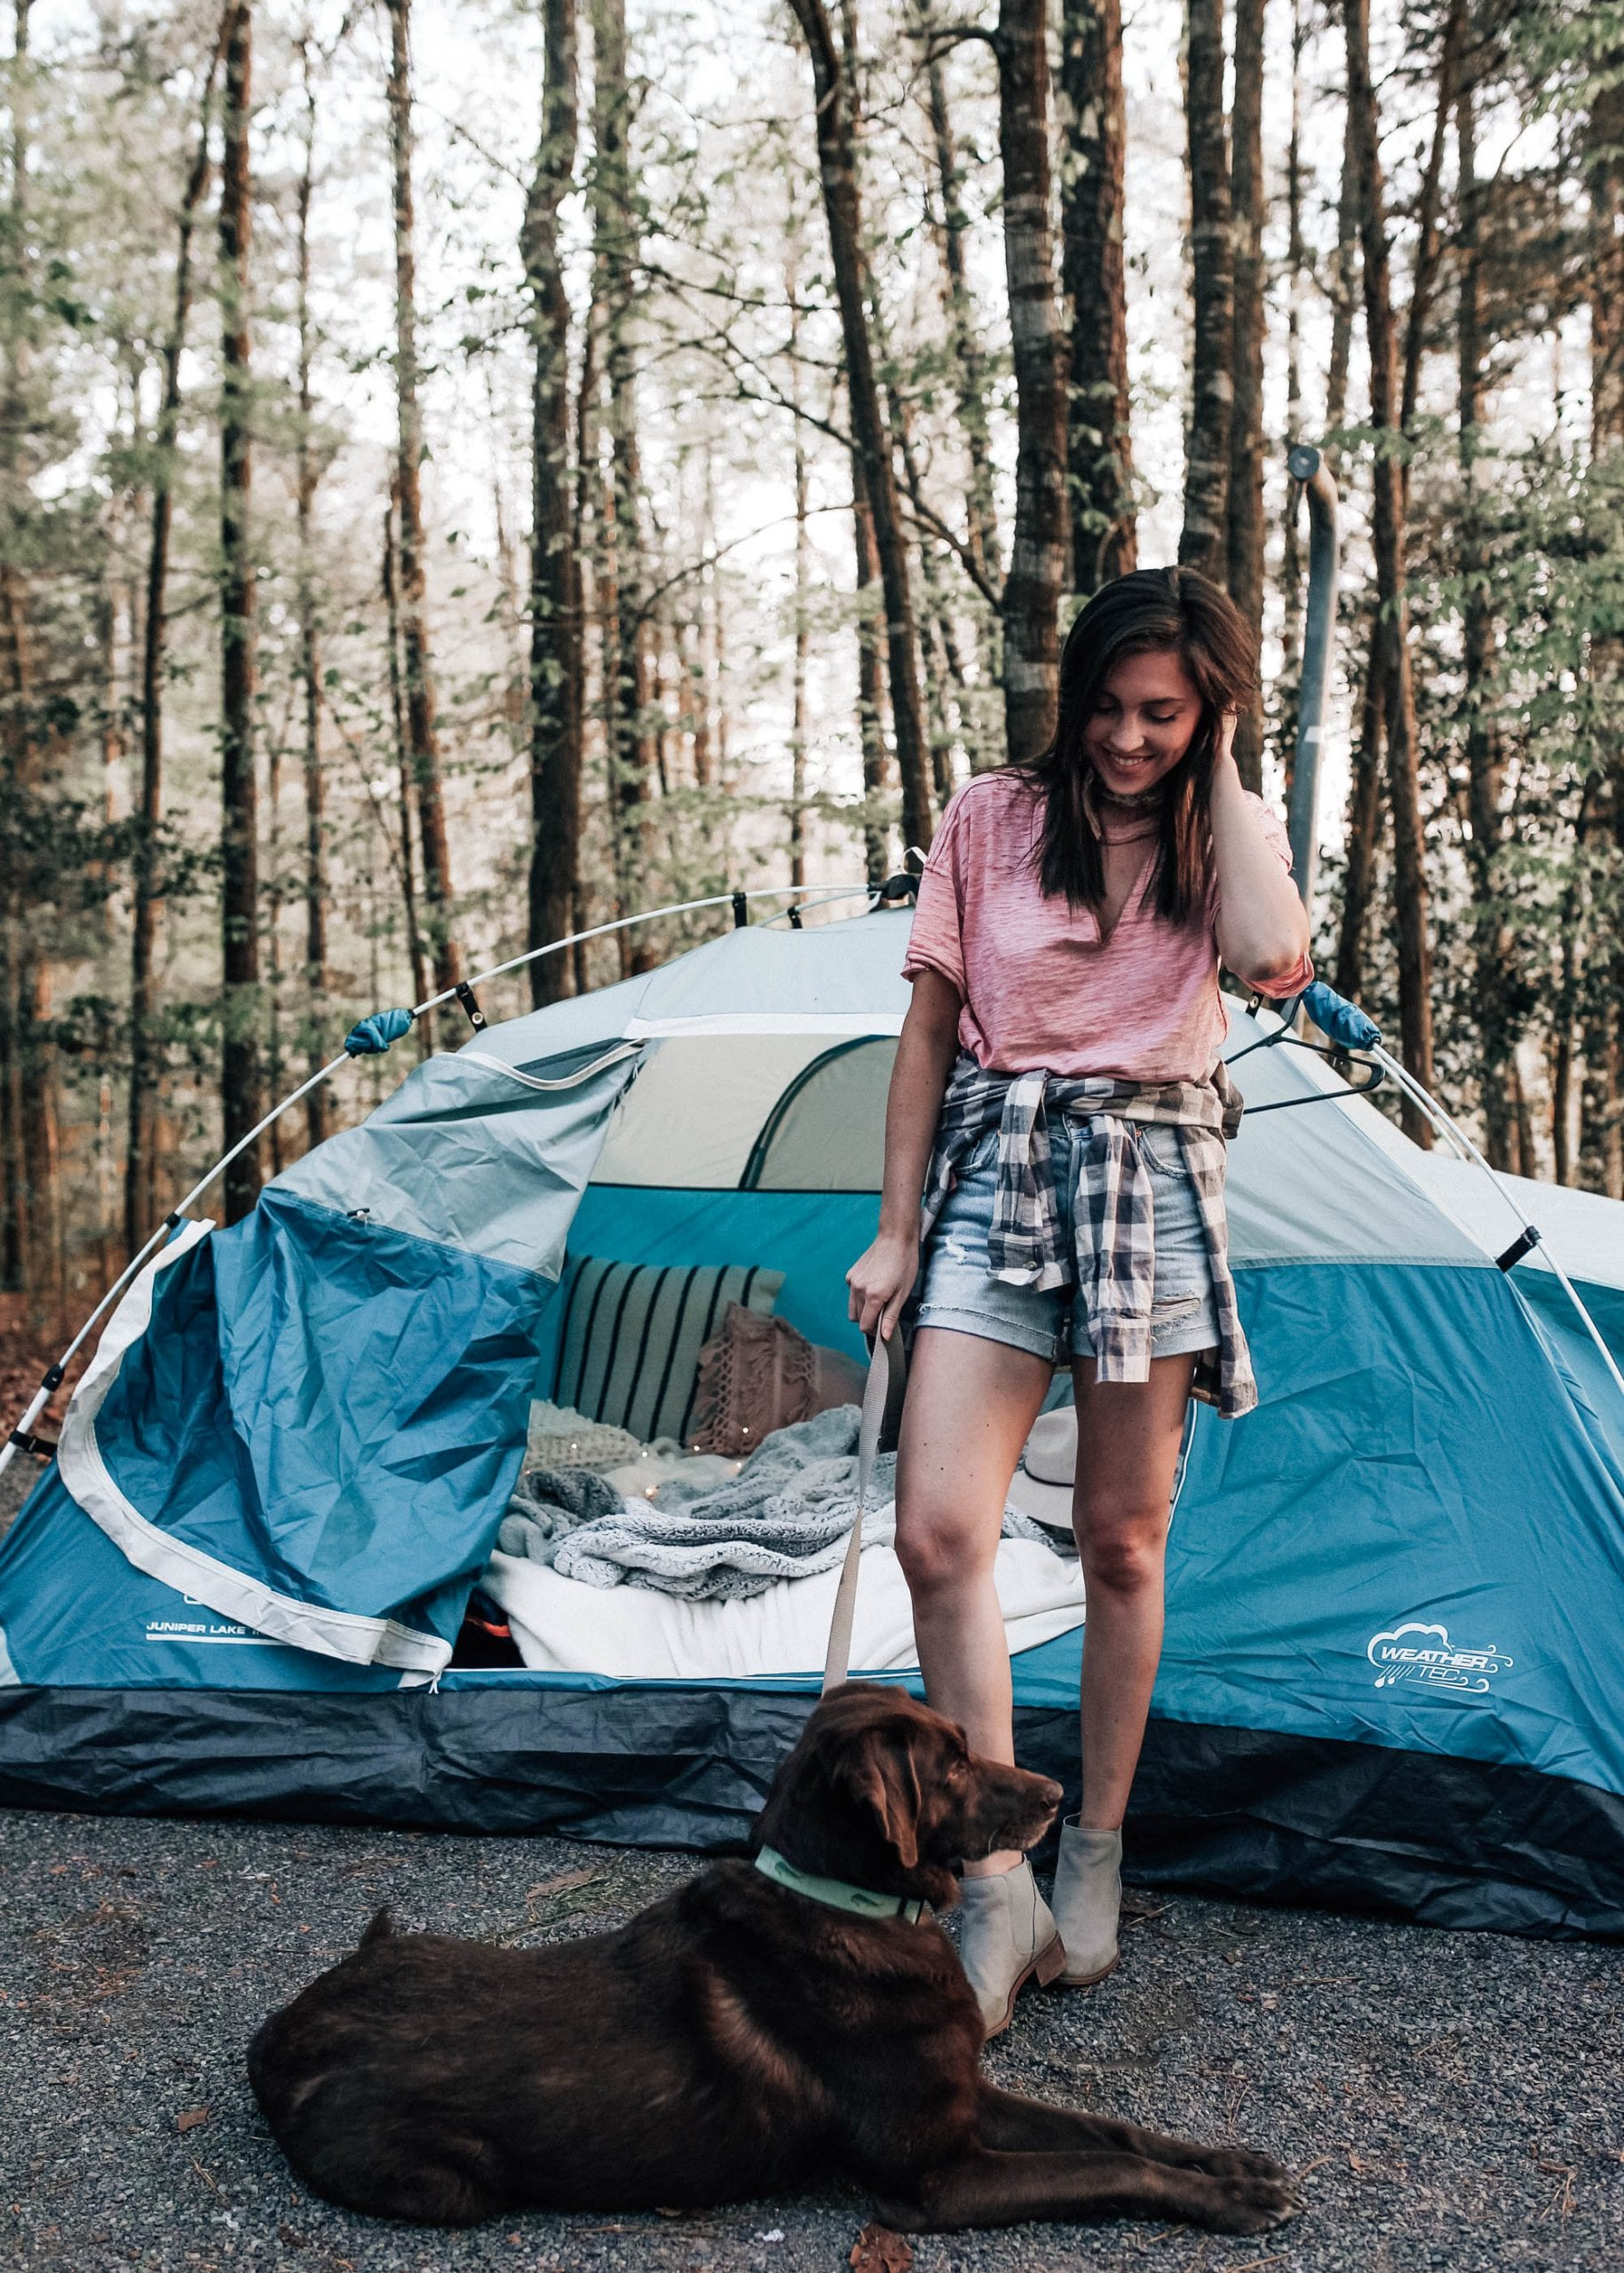 Camping Weekend + 5 Small Changes To Help The Environment